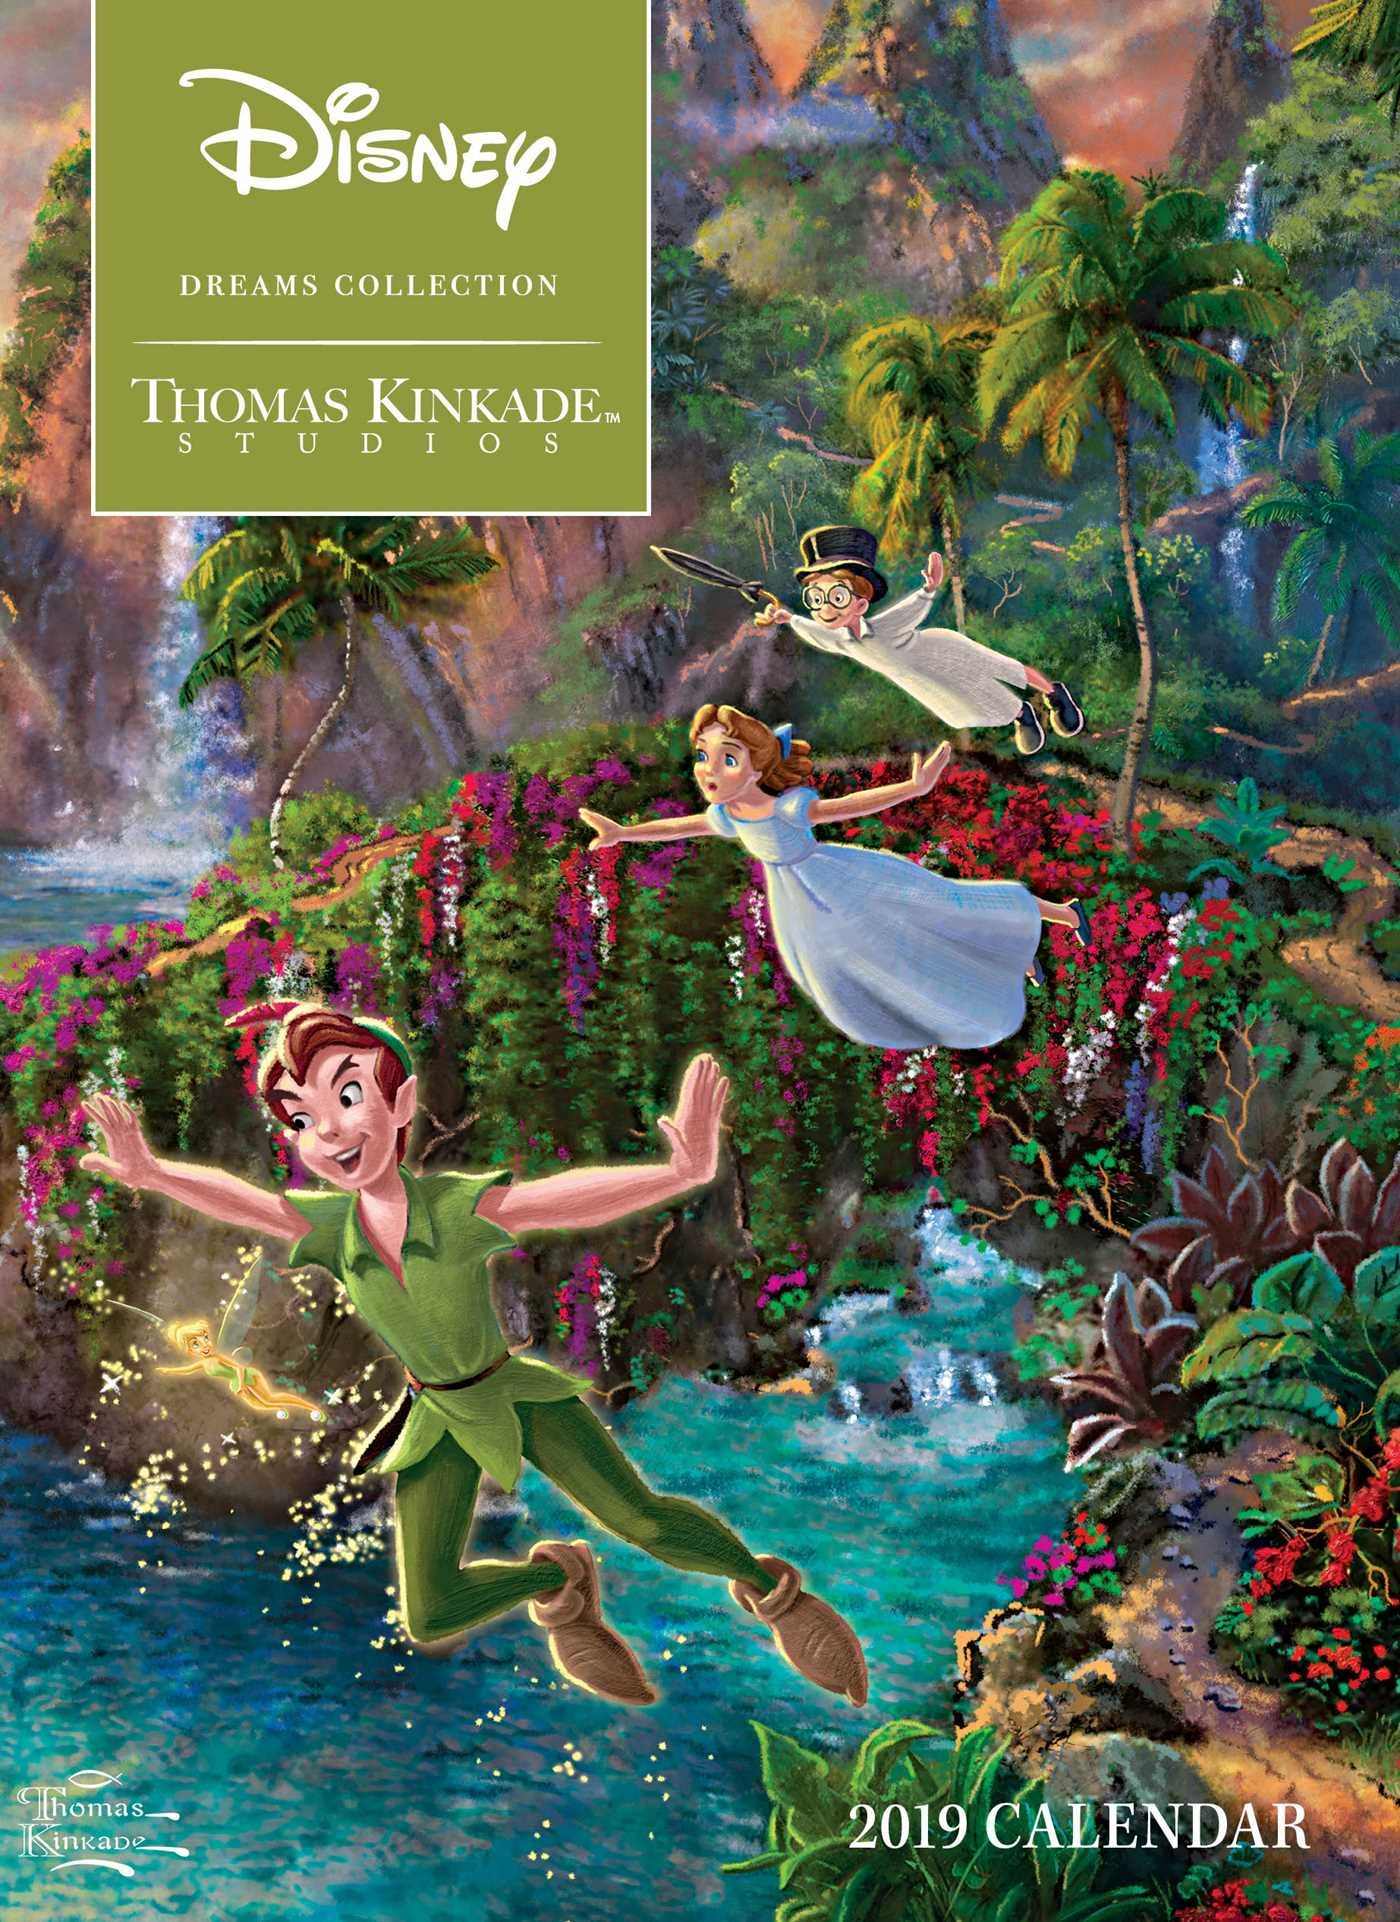 Amazon.com: Thomas Kinkade Studios: Disney Dreams Collection ...